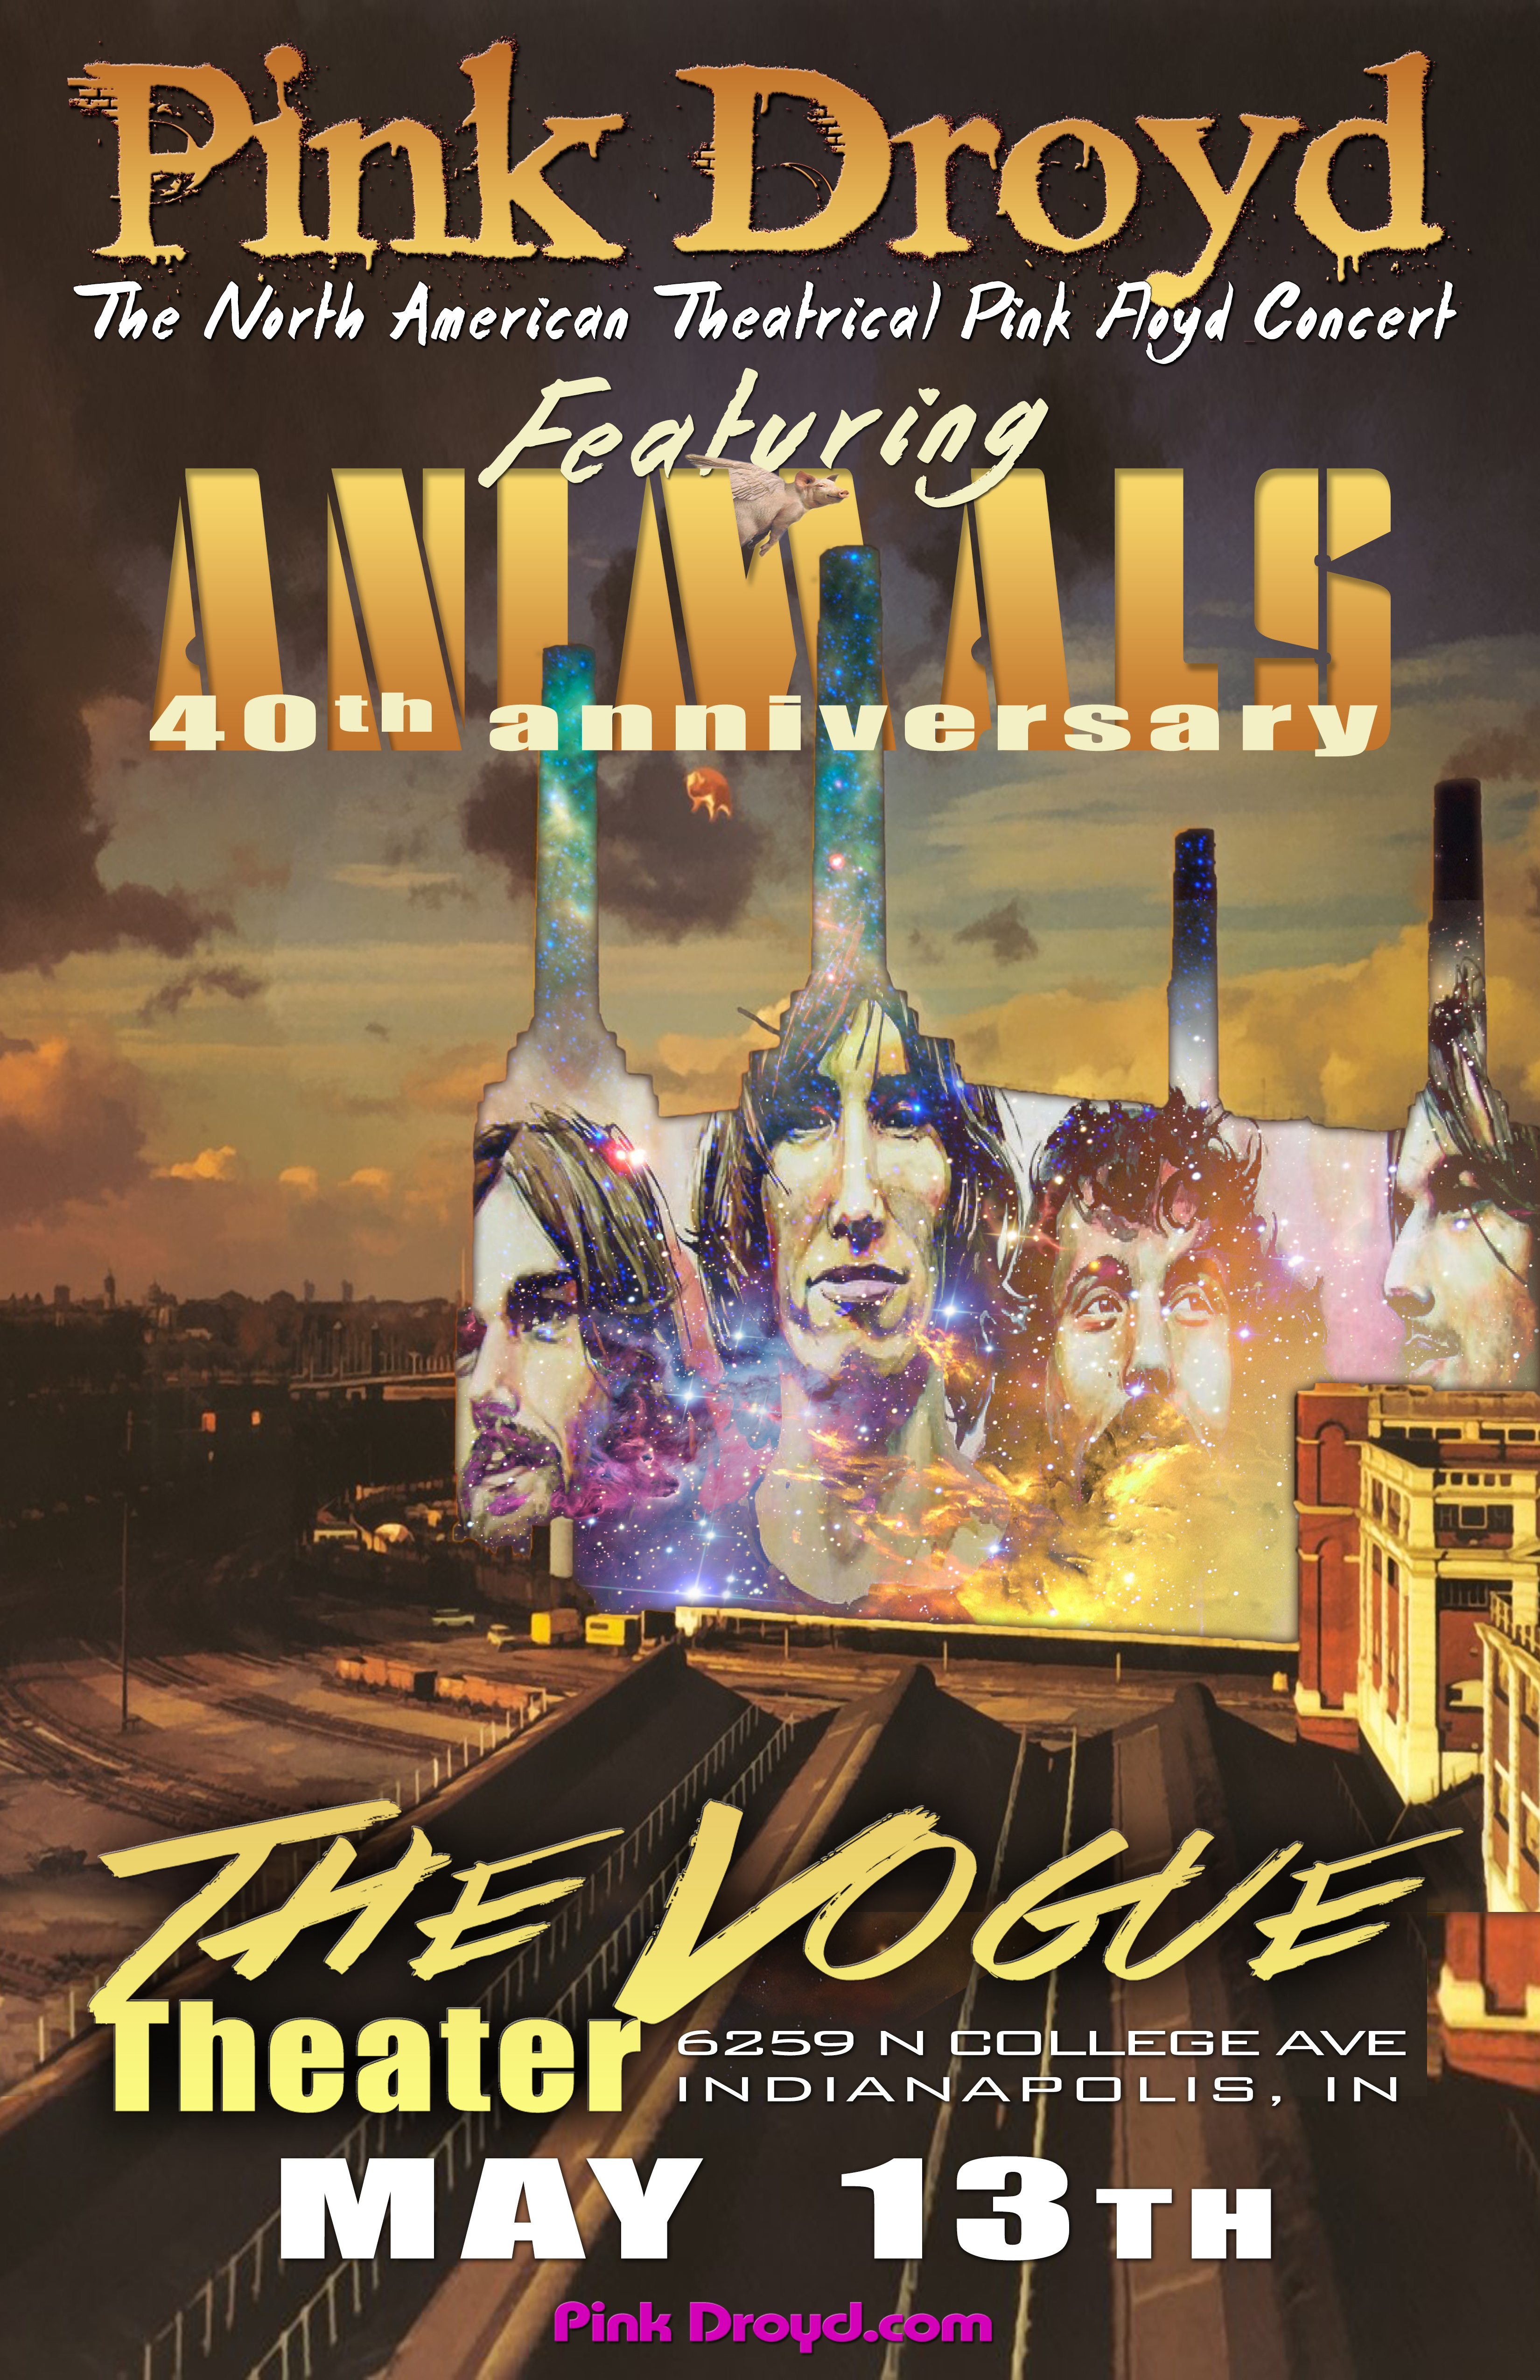 Pink Droyd Concert featuring the album Animals and other of your favorite Pink Floyd songs.